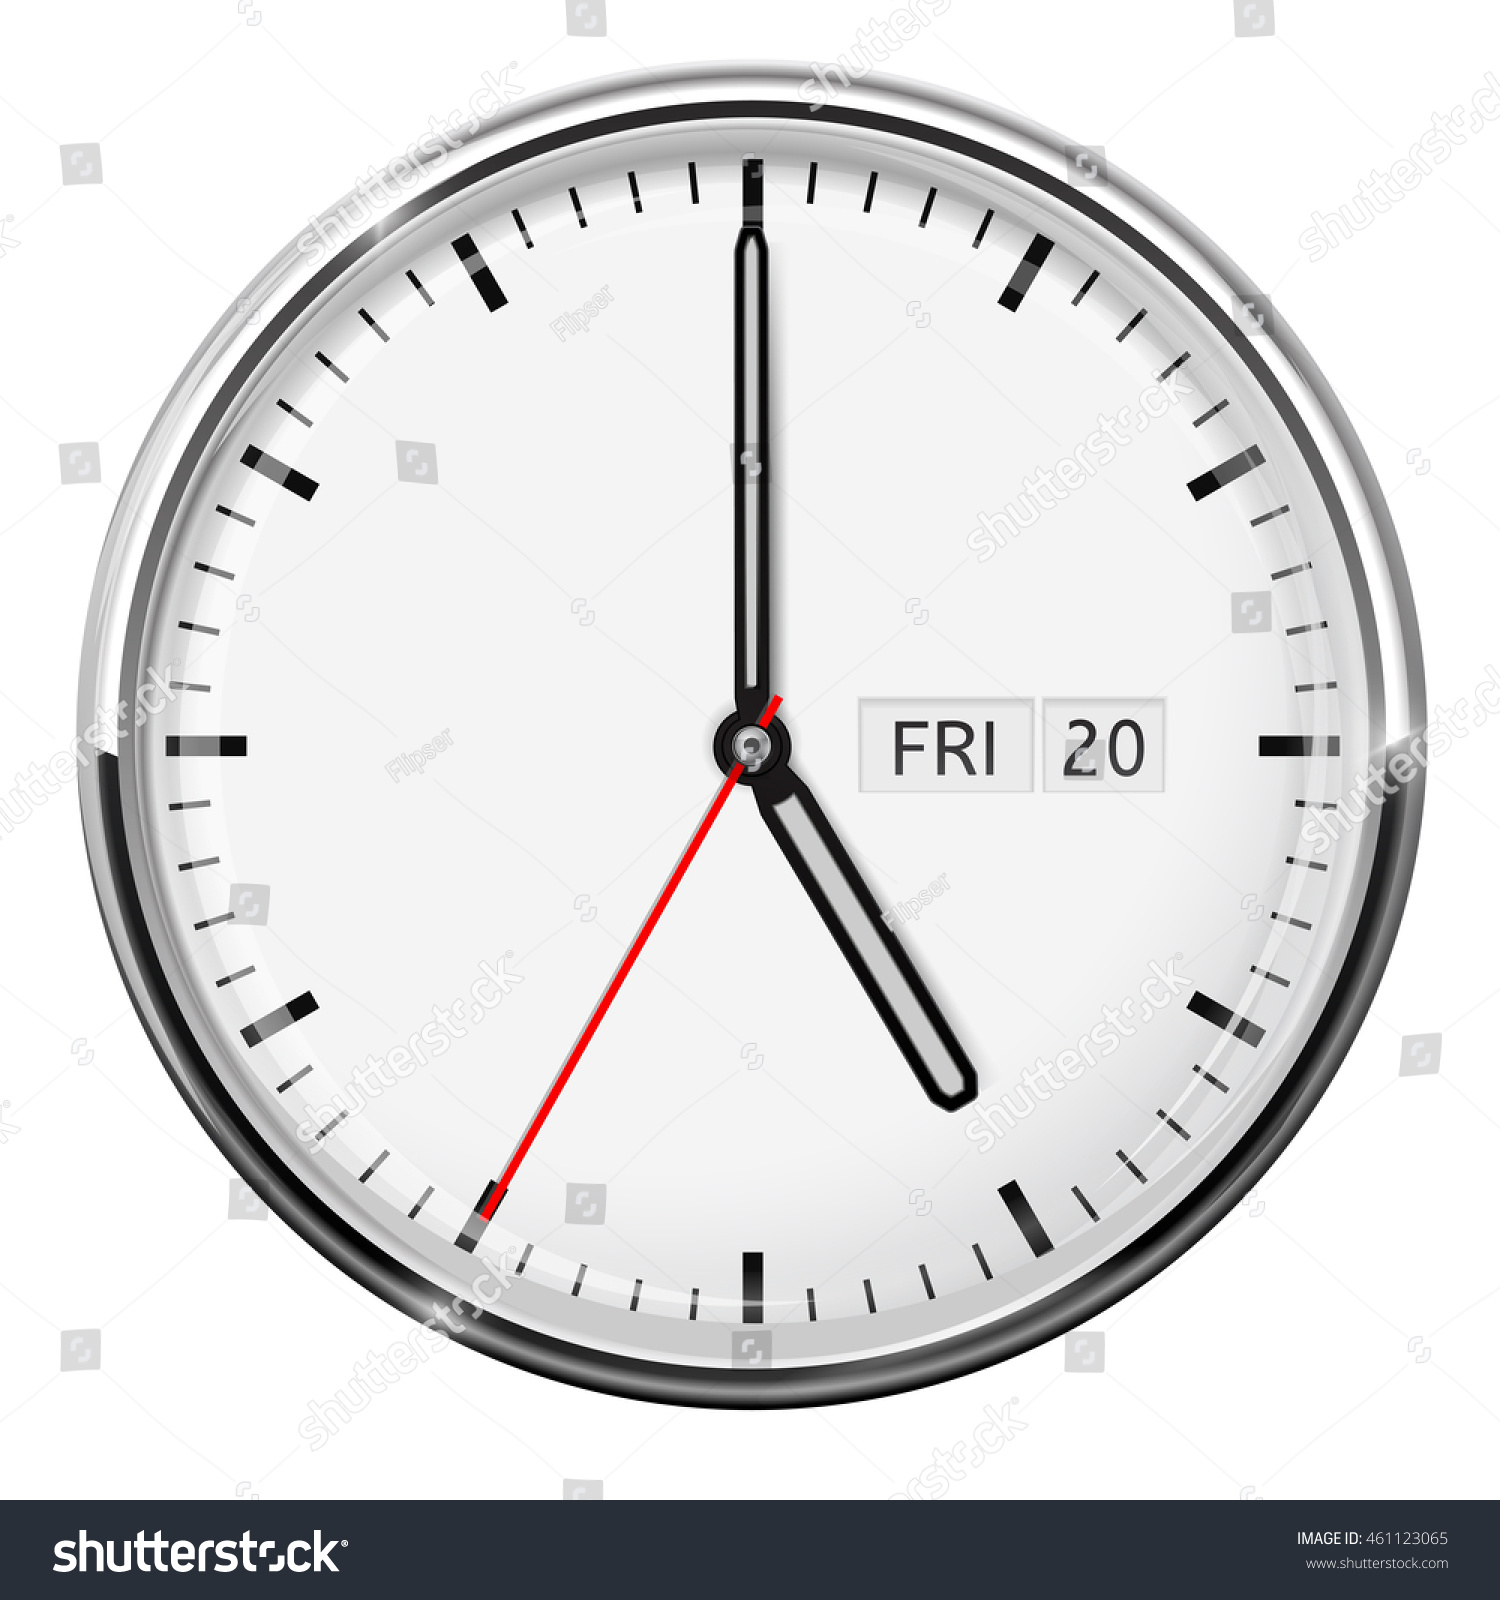 Oclock Full Version Clock Five Oclock Illustration Isolated On Stock